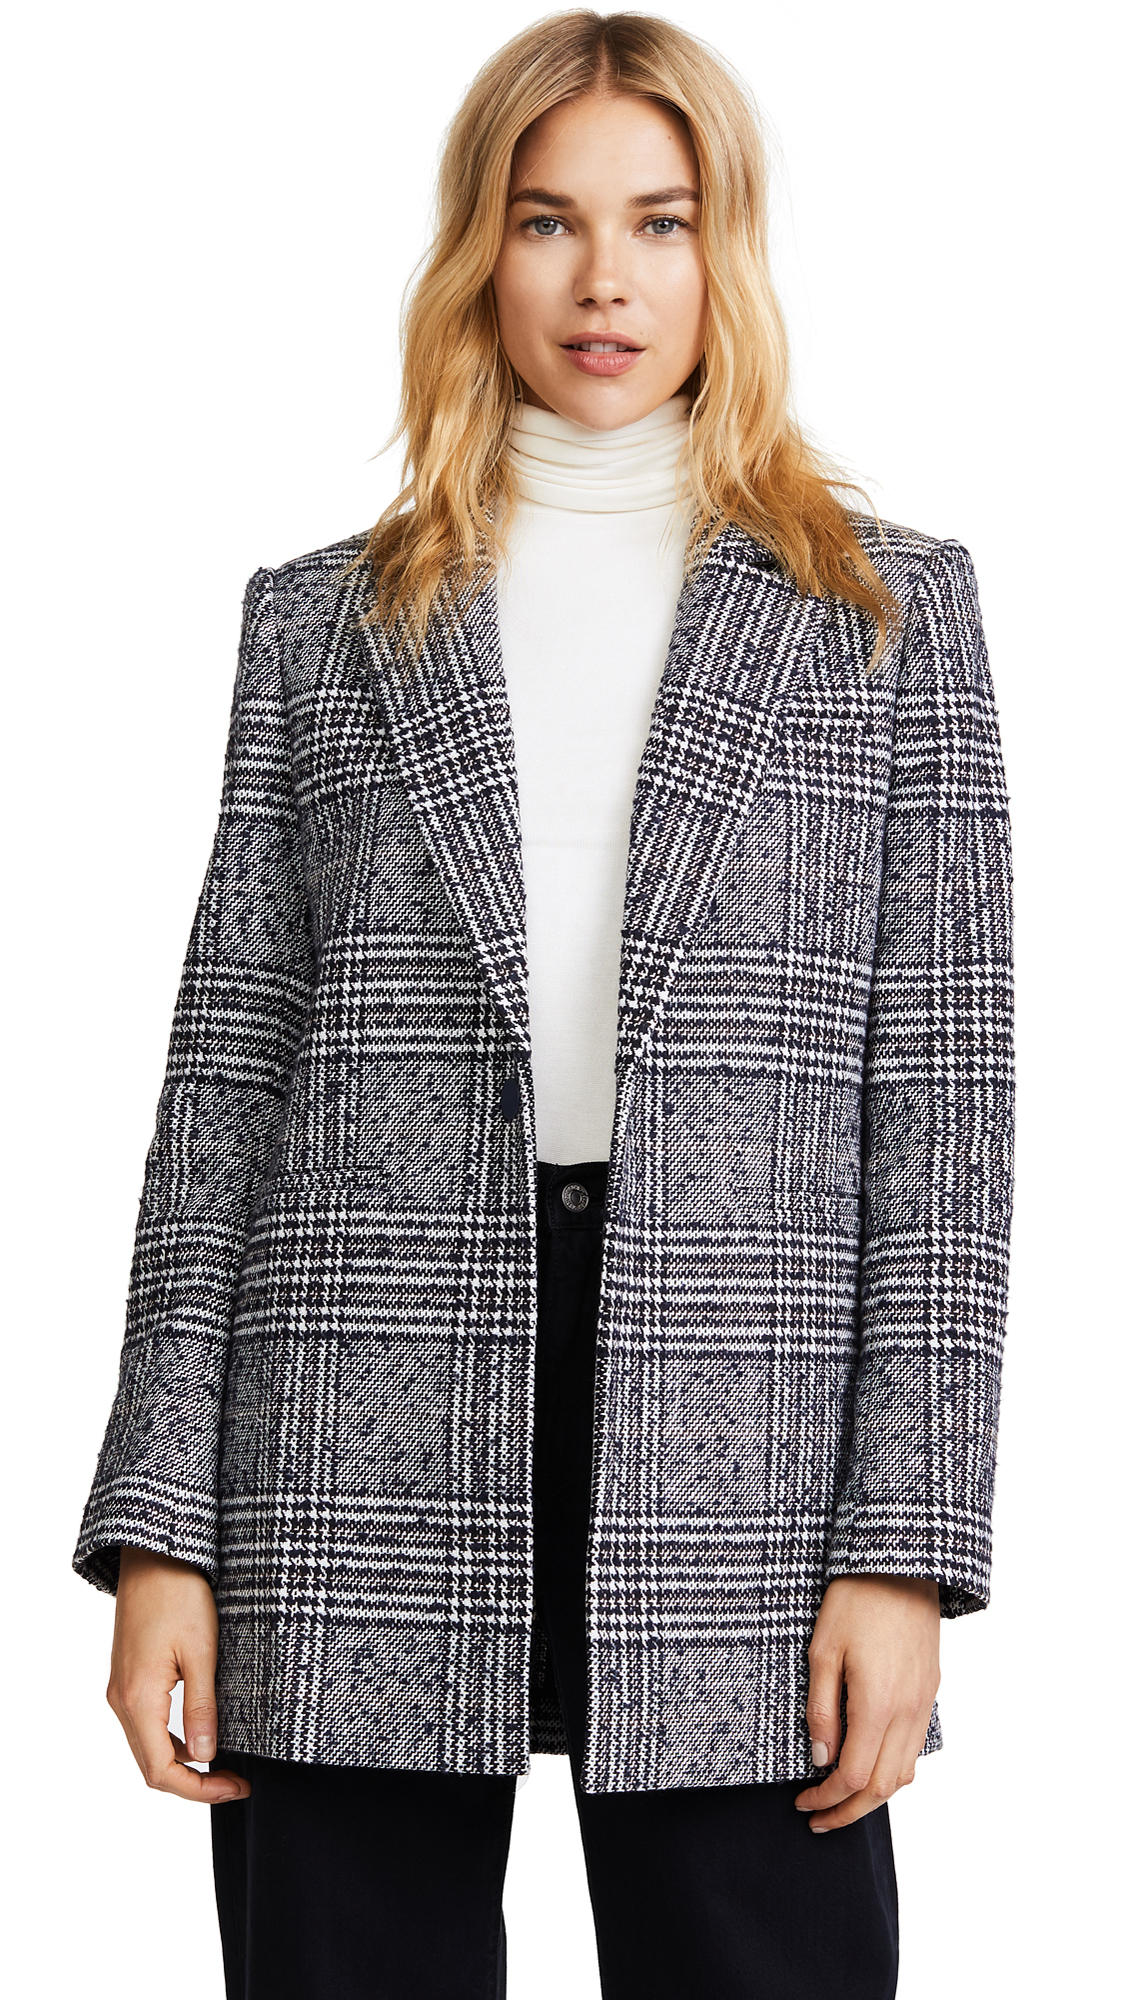 LAVEER Oversized Boyfriend Blazer - Wilderness Plaid